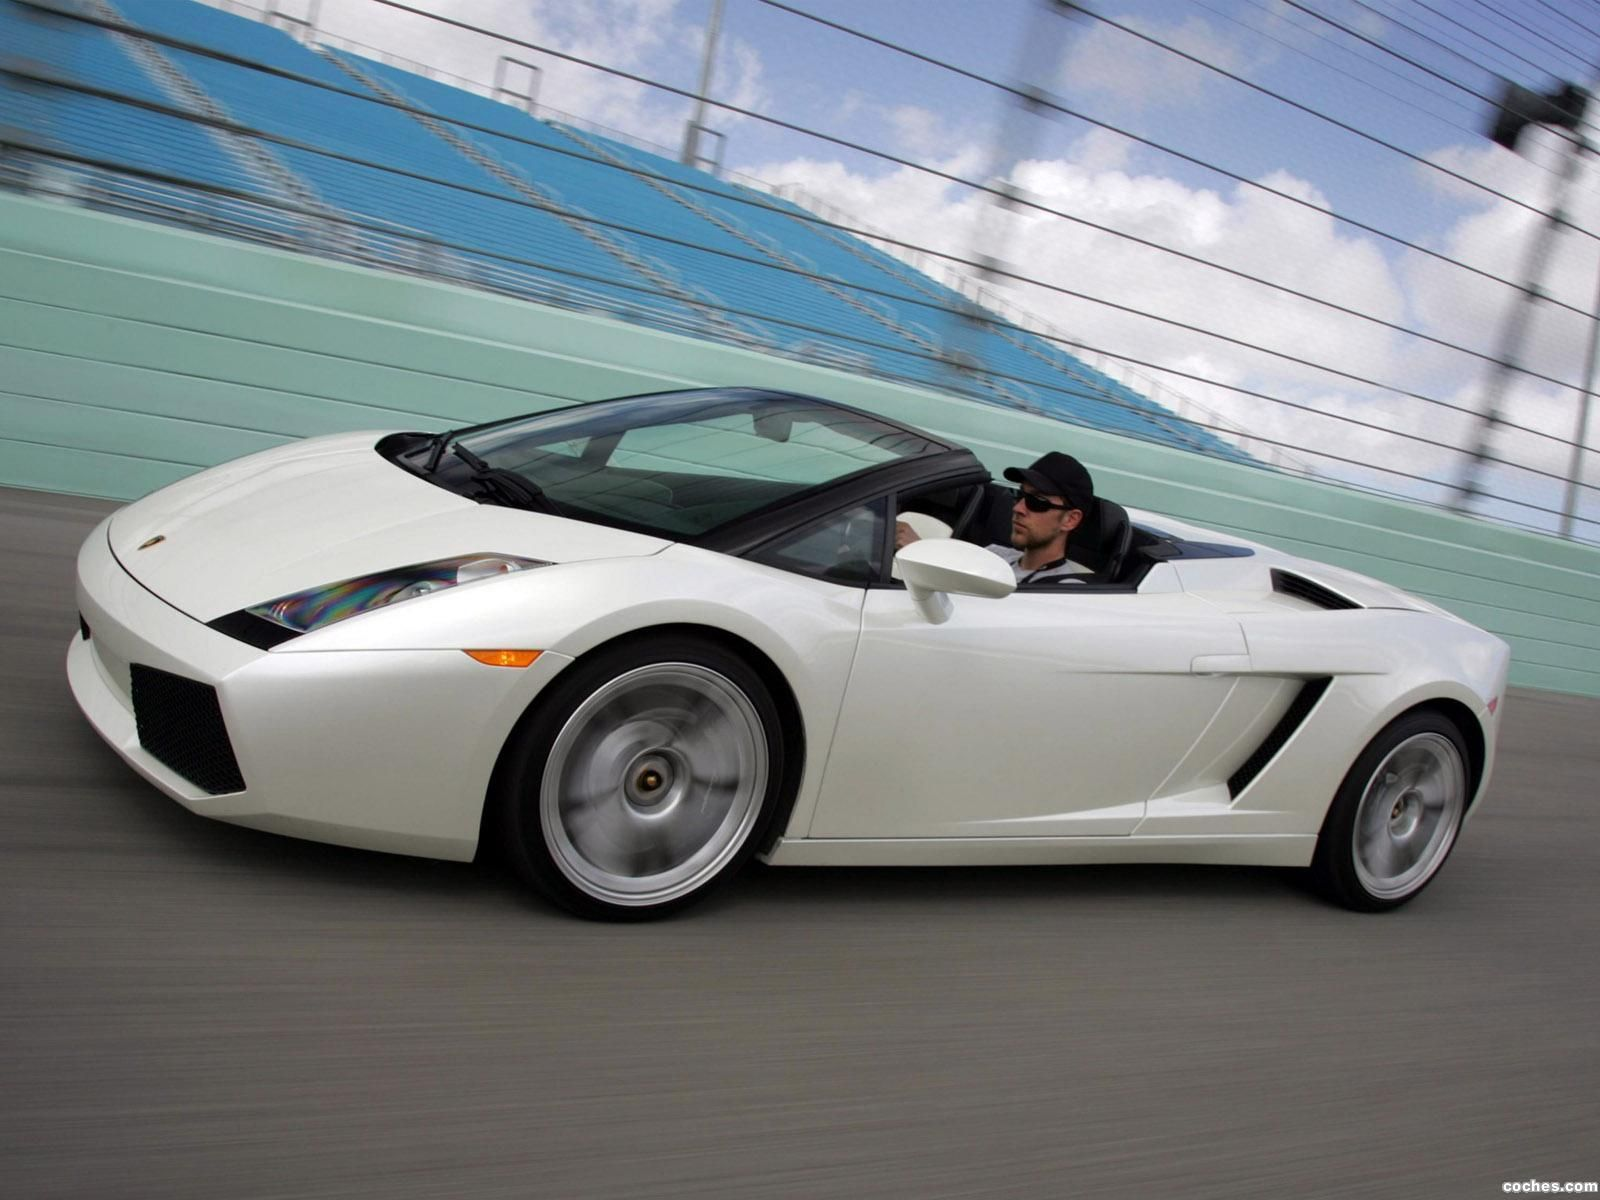 scammed he and watch owned pre have it how lamborghini used gallardo could a buying got guy avoided this